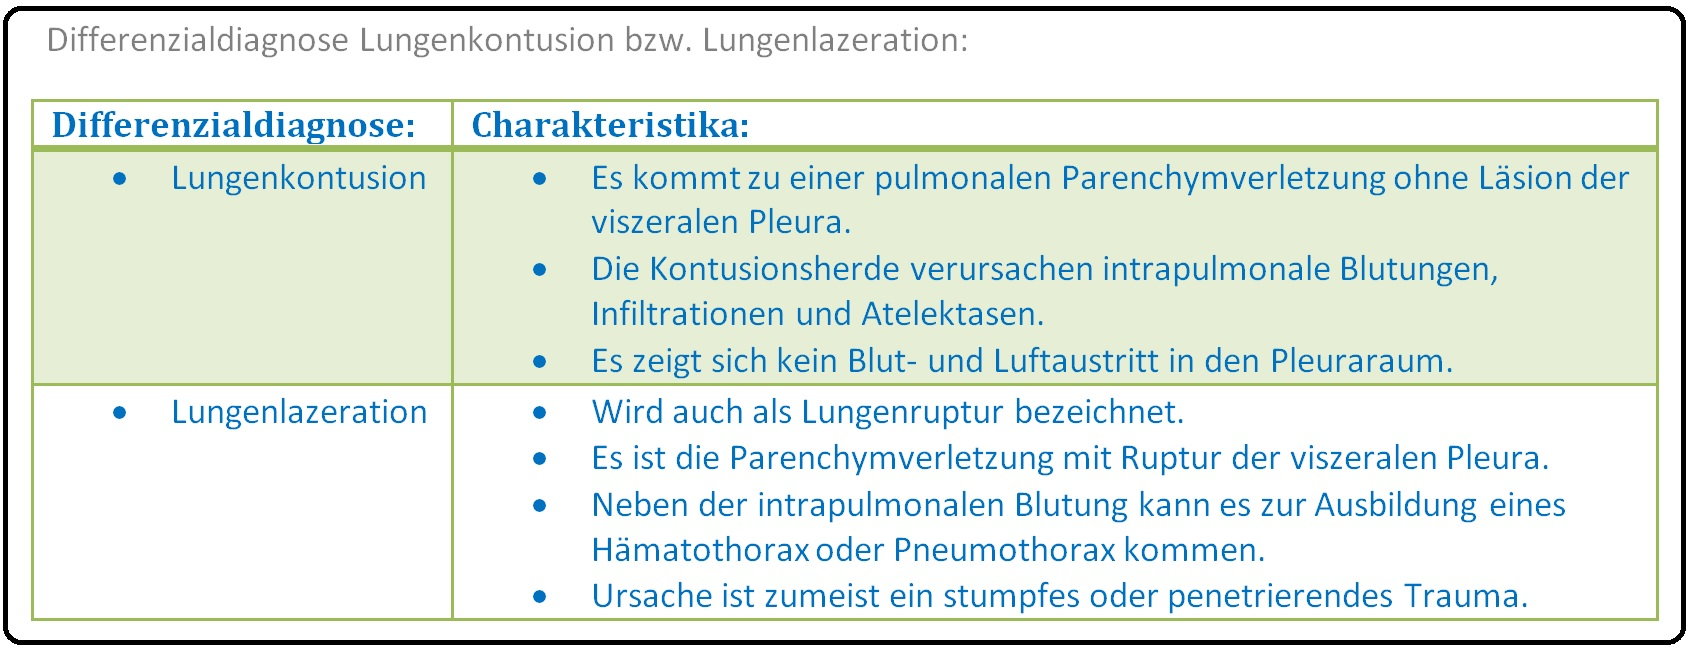 649 Differenzialdiagnose Lungenkontusion bzw. Lungenlazeration